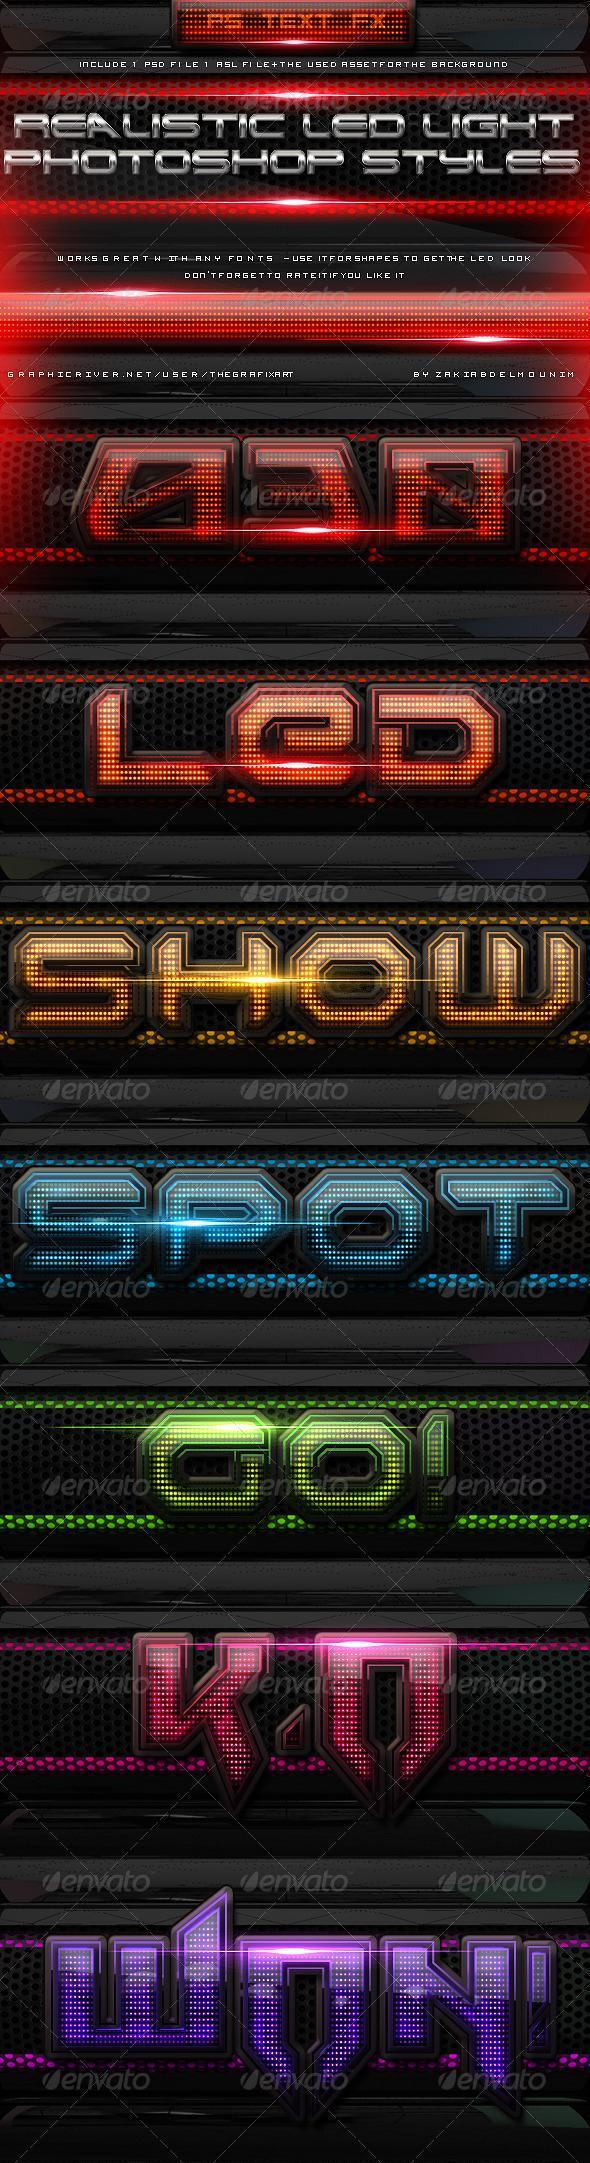 Led Light Text Style for Photoshop